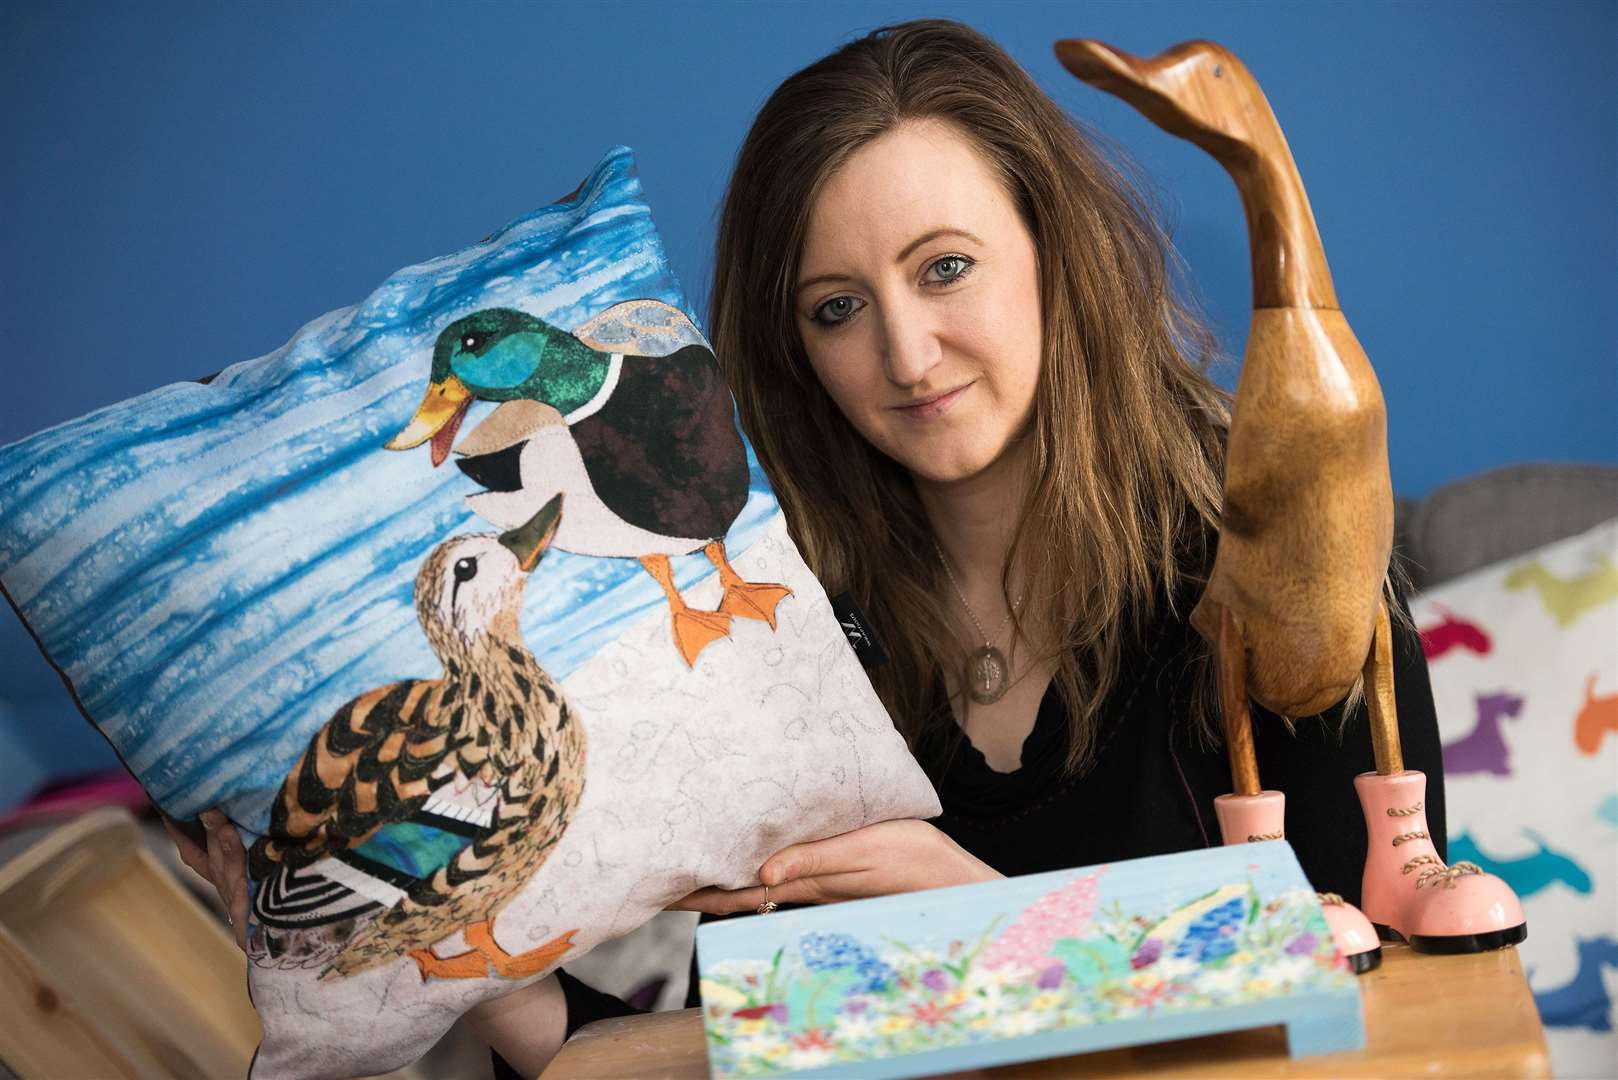 Sudbury entrepreneur Sarah-Marie Underhay who is expanding her Ducks in Boots business in Sudbury to larger premises to cope with demand for craft lessons. Picture Mark Westley. (7591992)